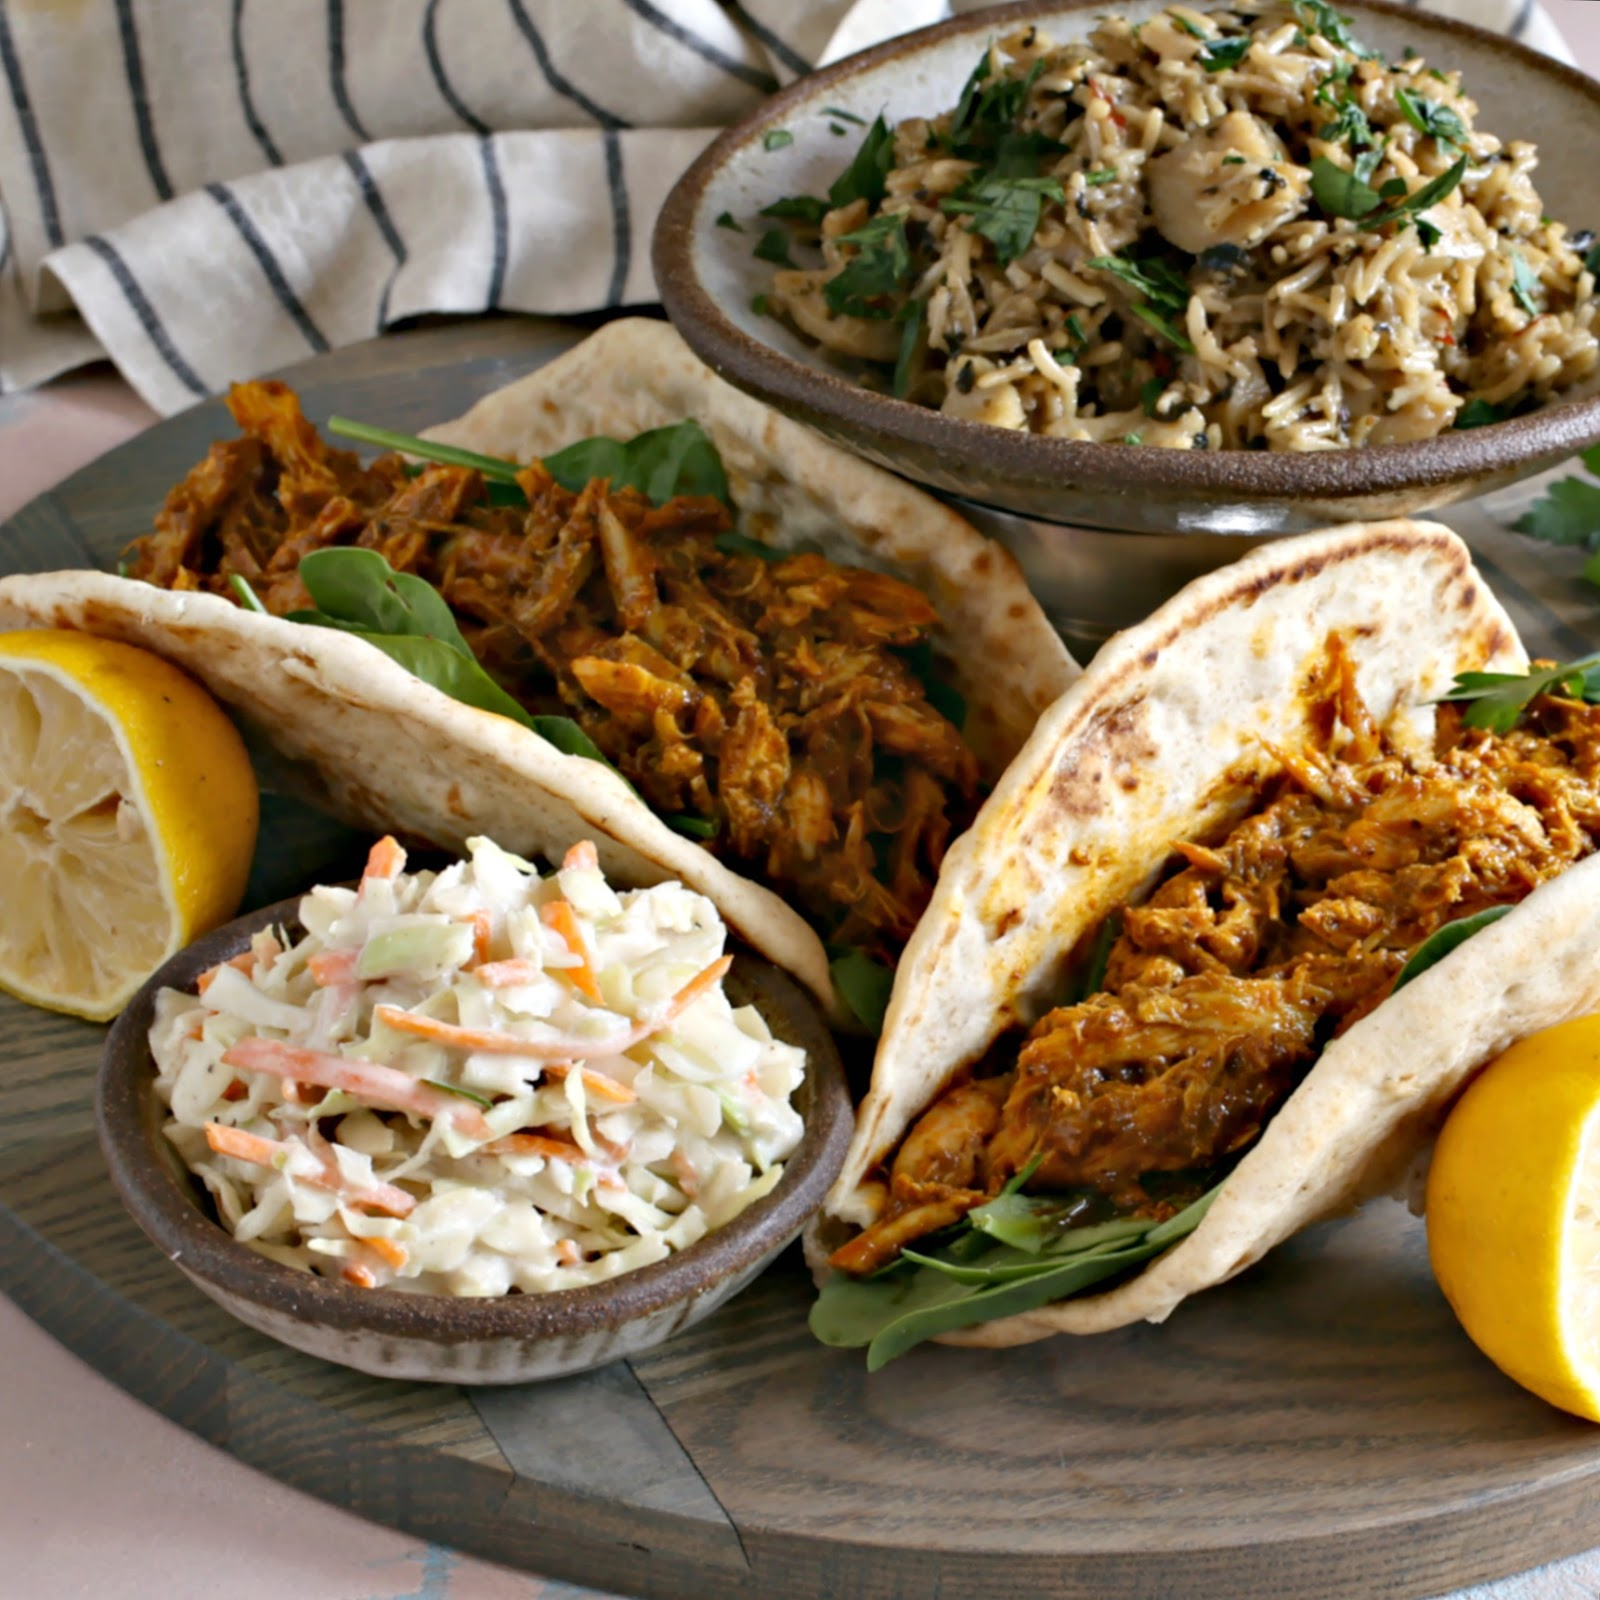 Chicken tacos in flavorful shawarma sauce with tahini slaw.